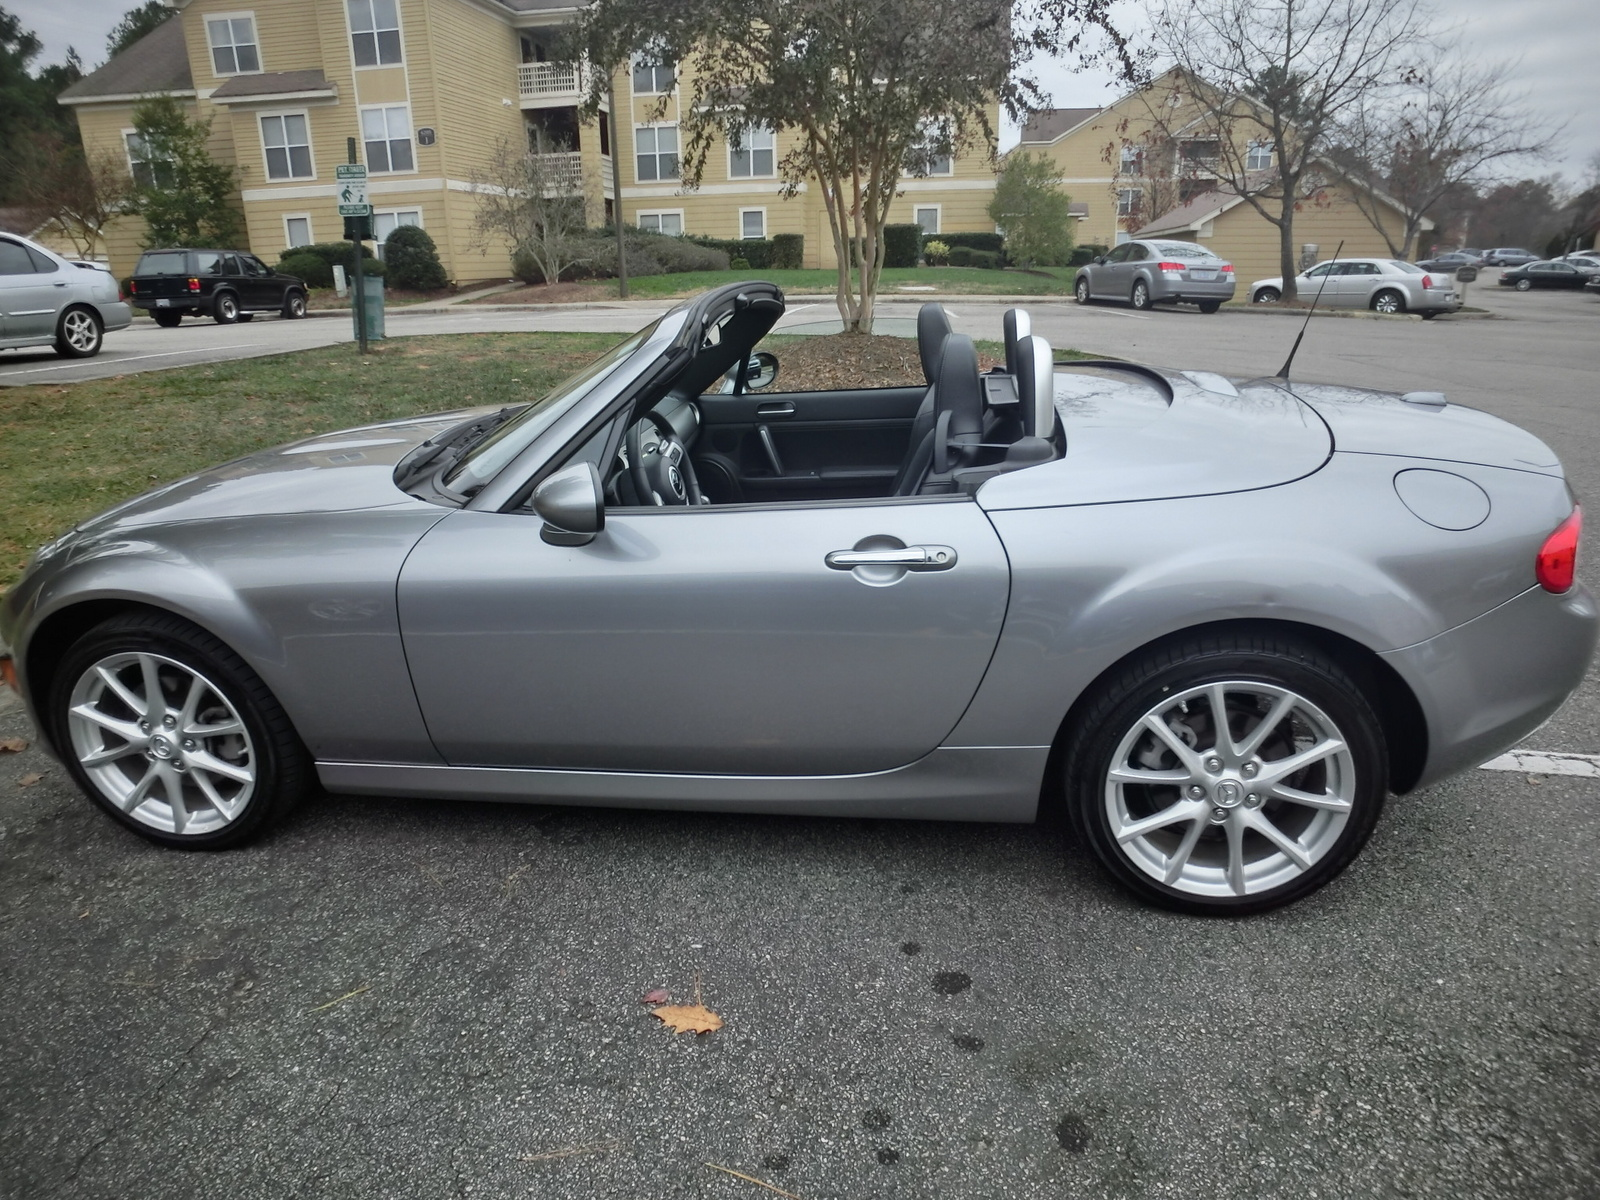 2011 mazda mx 5 miata exterior pictures cargurus. Black Bedroom Furniture Sets. Home Design Ideas